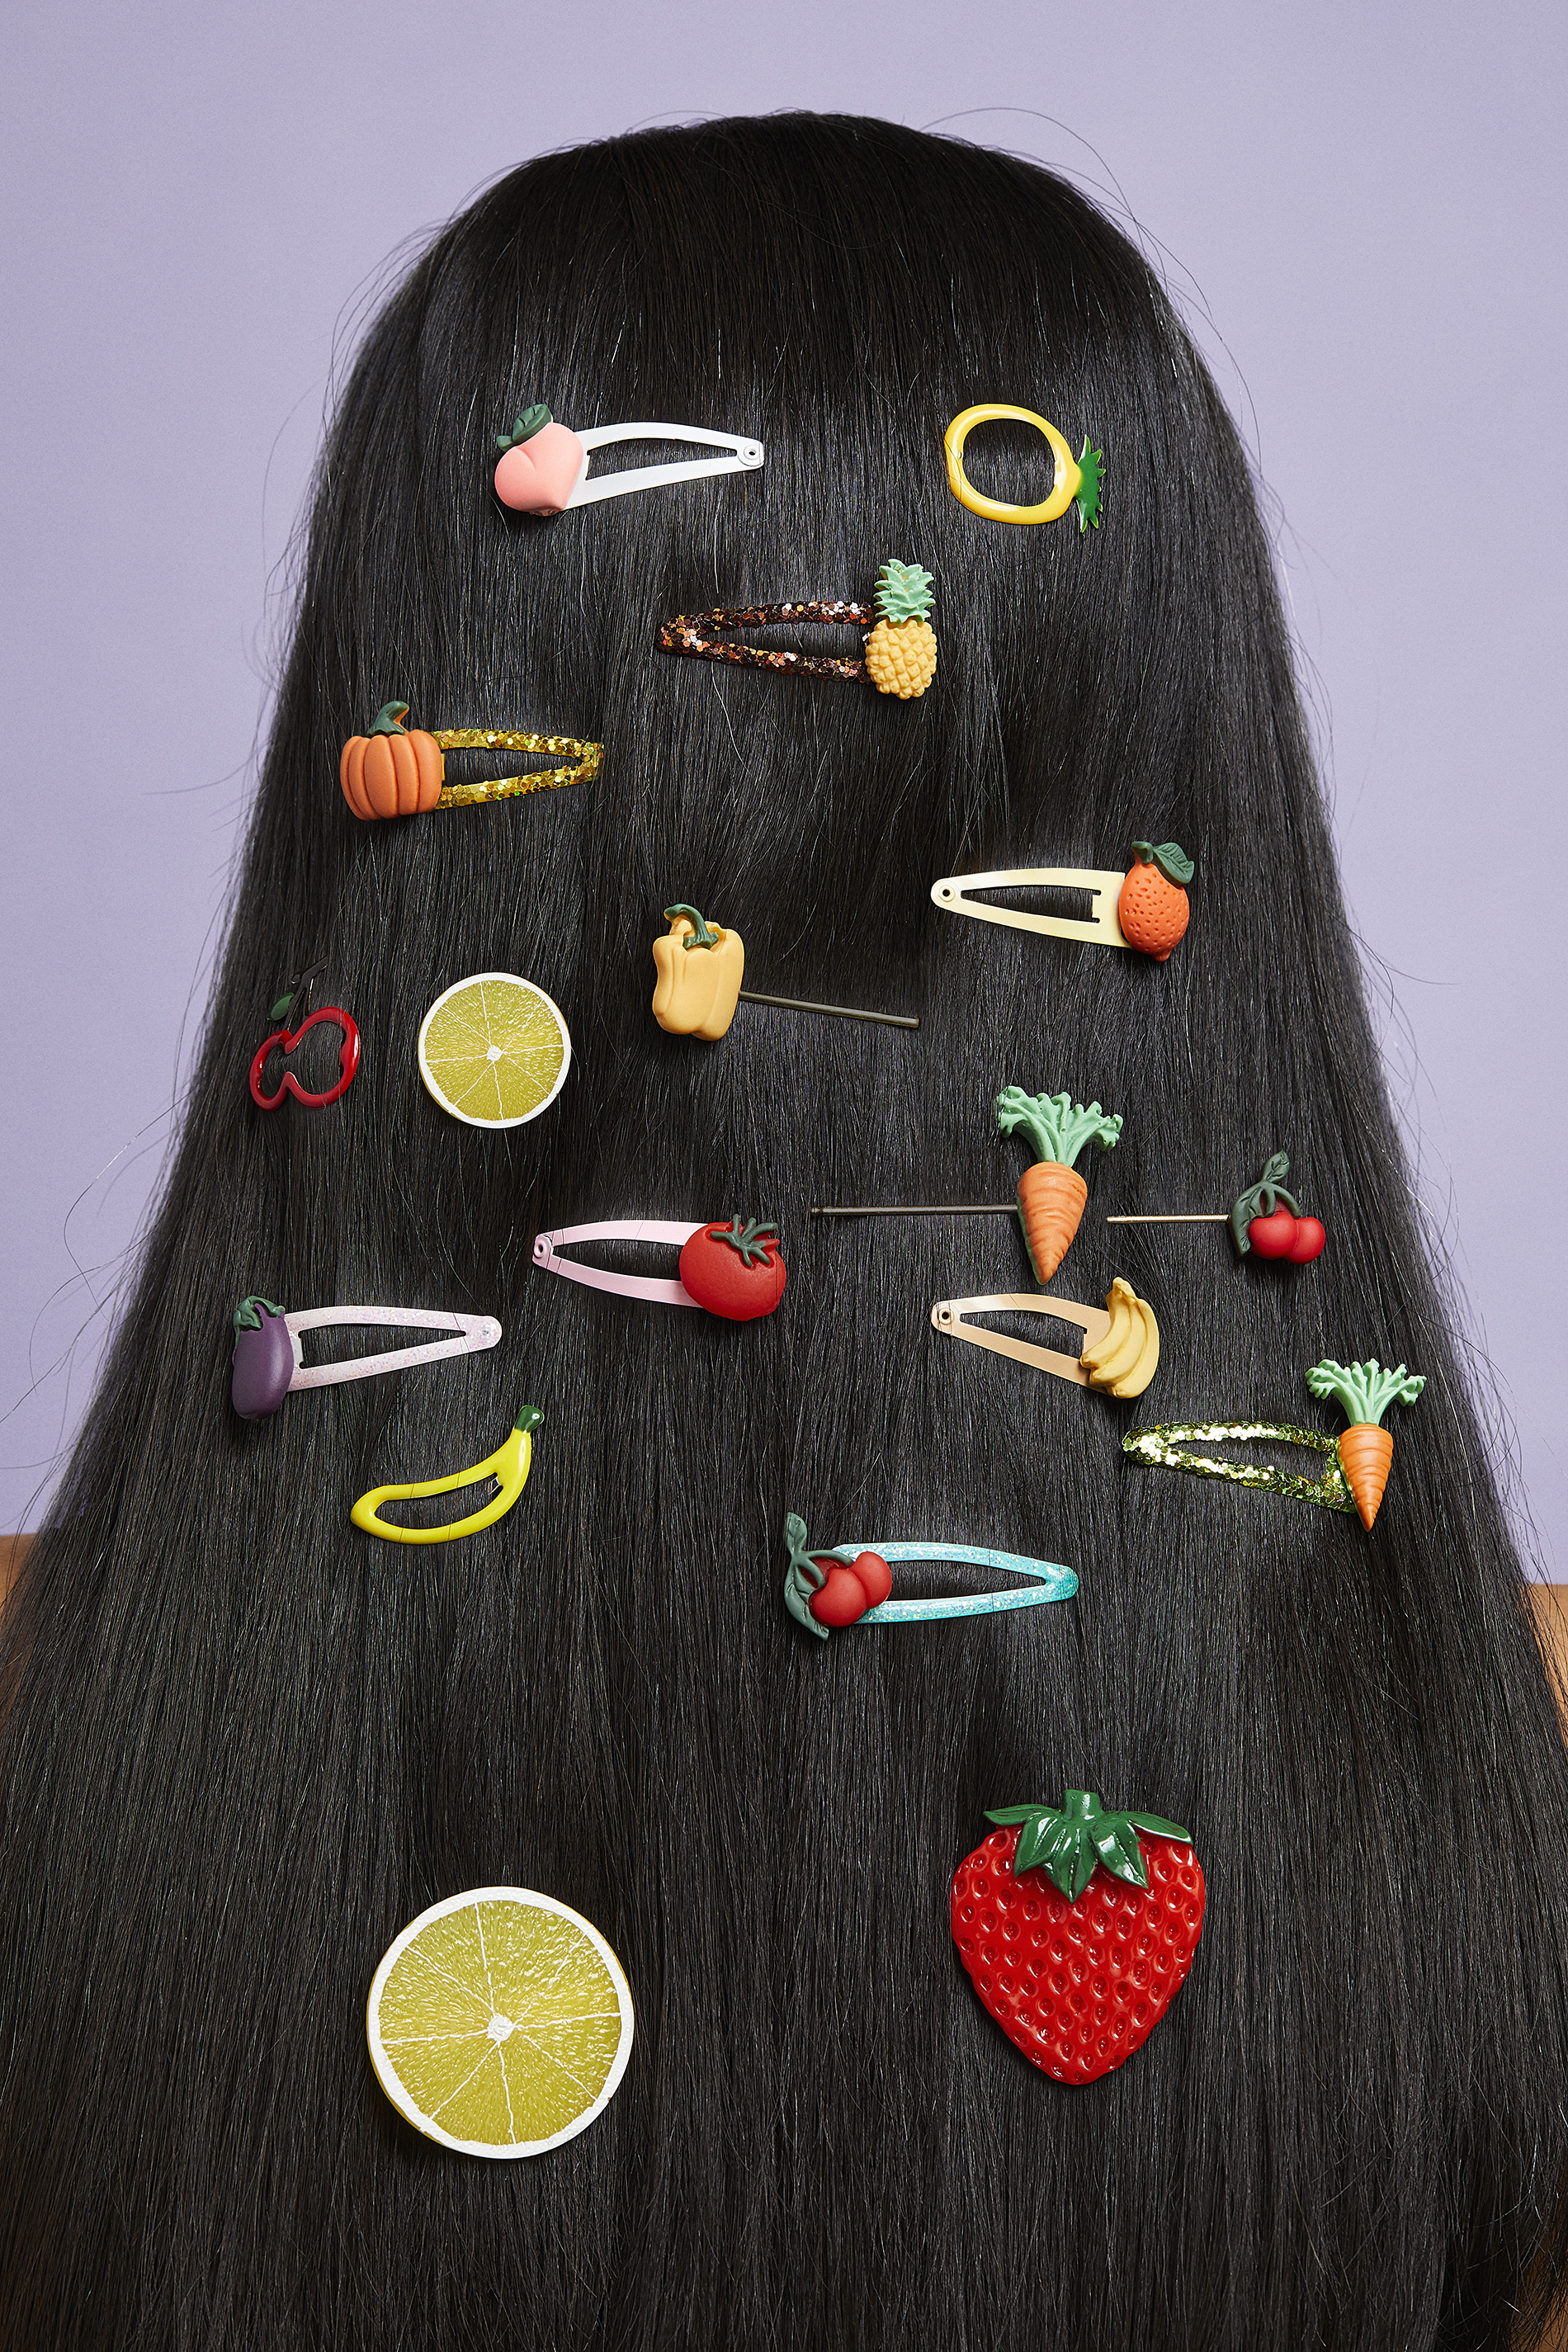 woman with long, black, straight hair with fruit barrettes in her hair